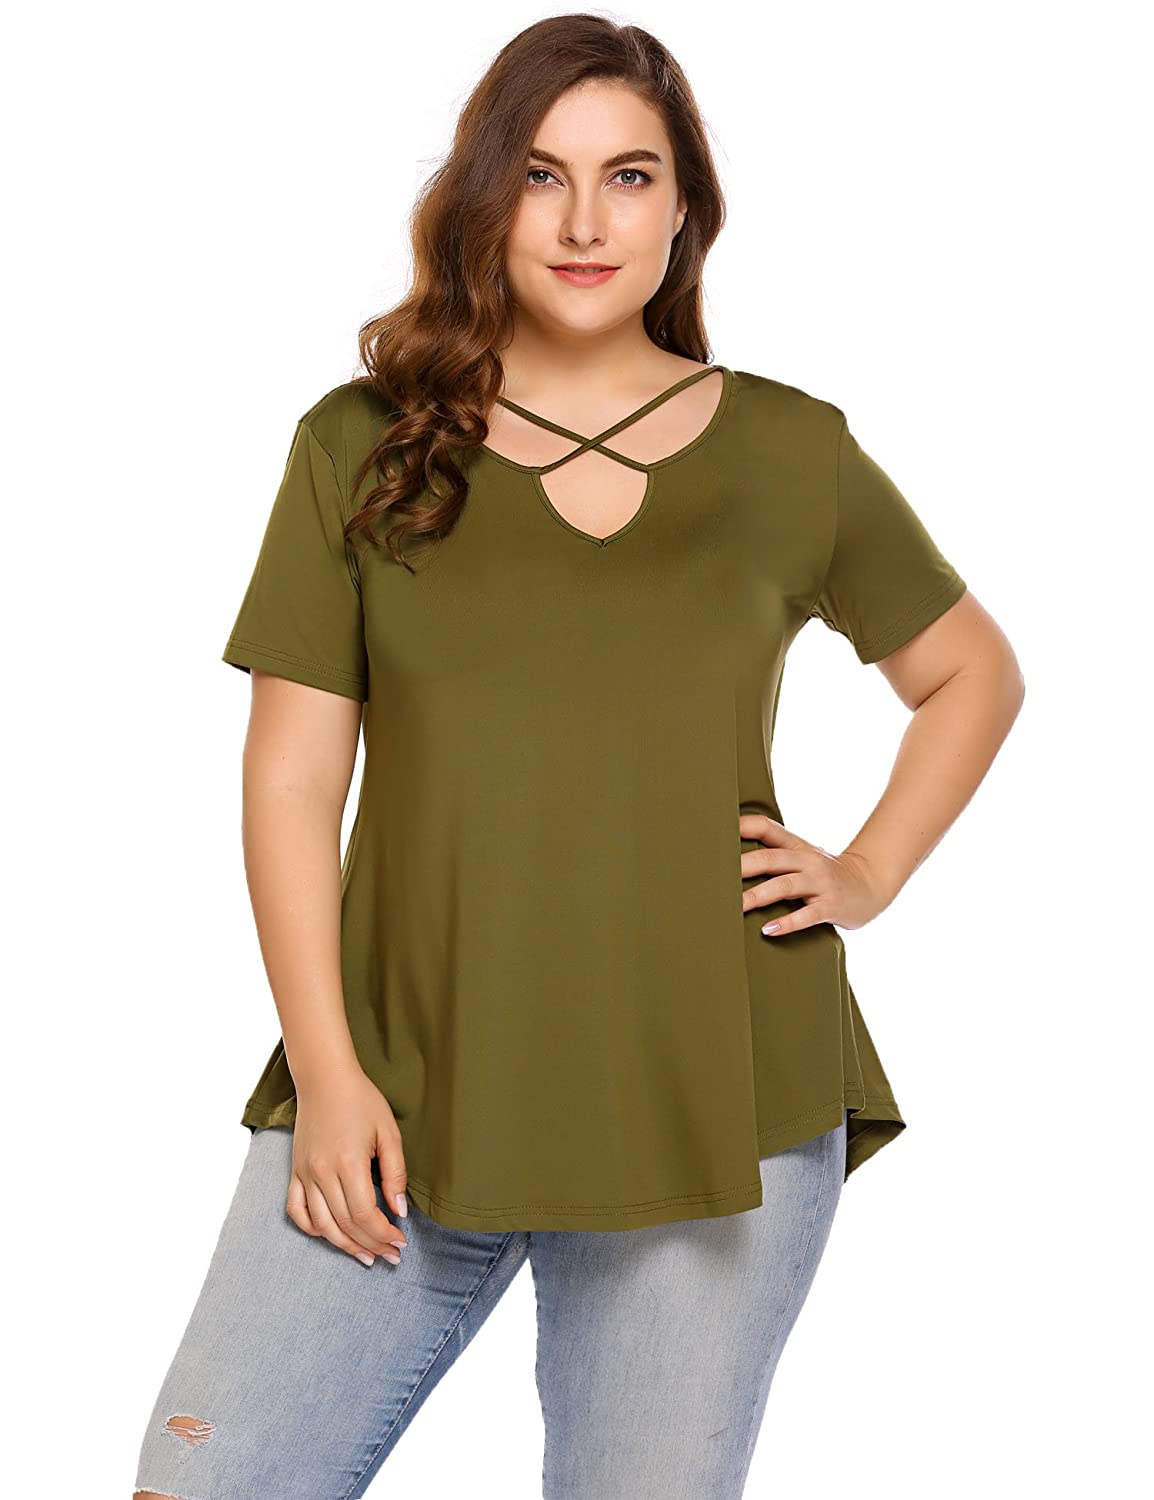 7fb91c20 FEATURES - Sexy V neck bandage cross design on the front,short sleeves,  relaxed fit. All-Match.Pair with your favorite pants,jeans,shorts,leggings  to show ...